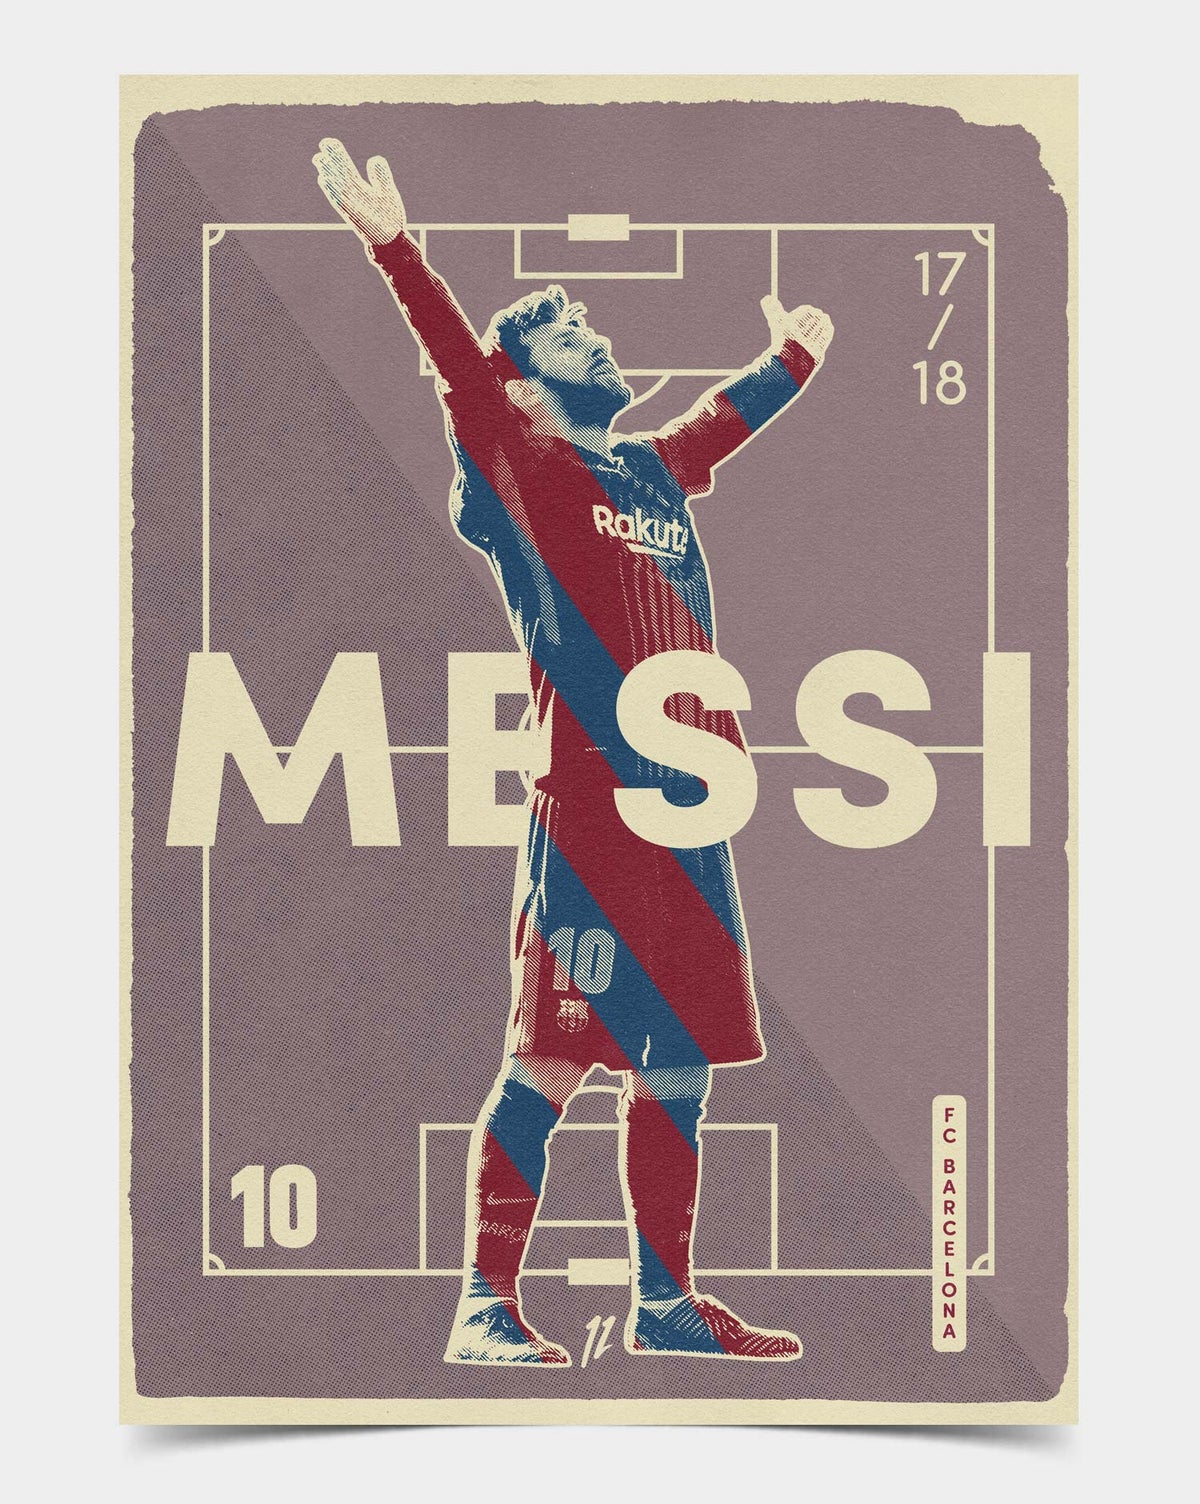 Image of Messi Retro